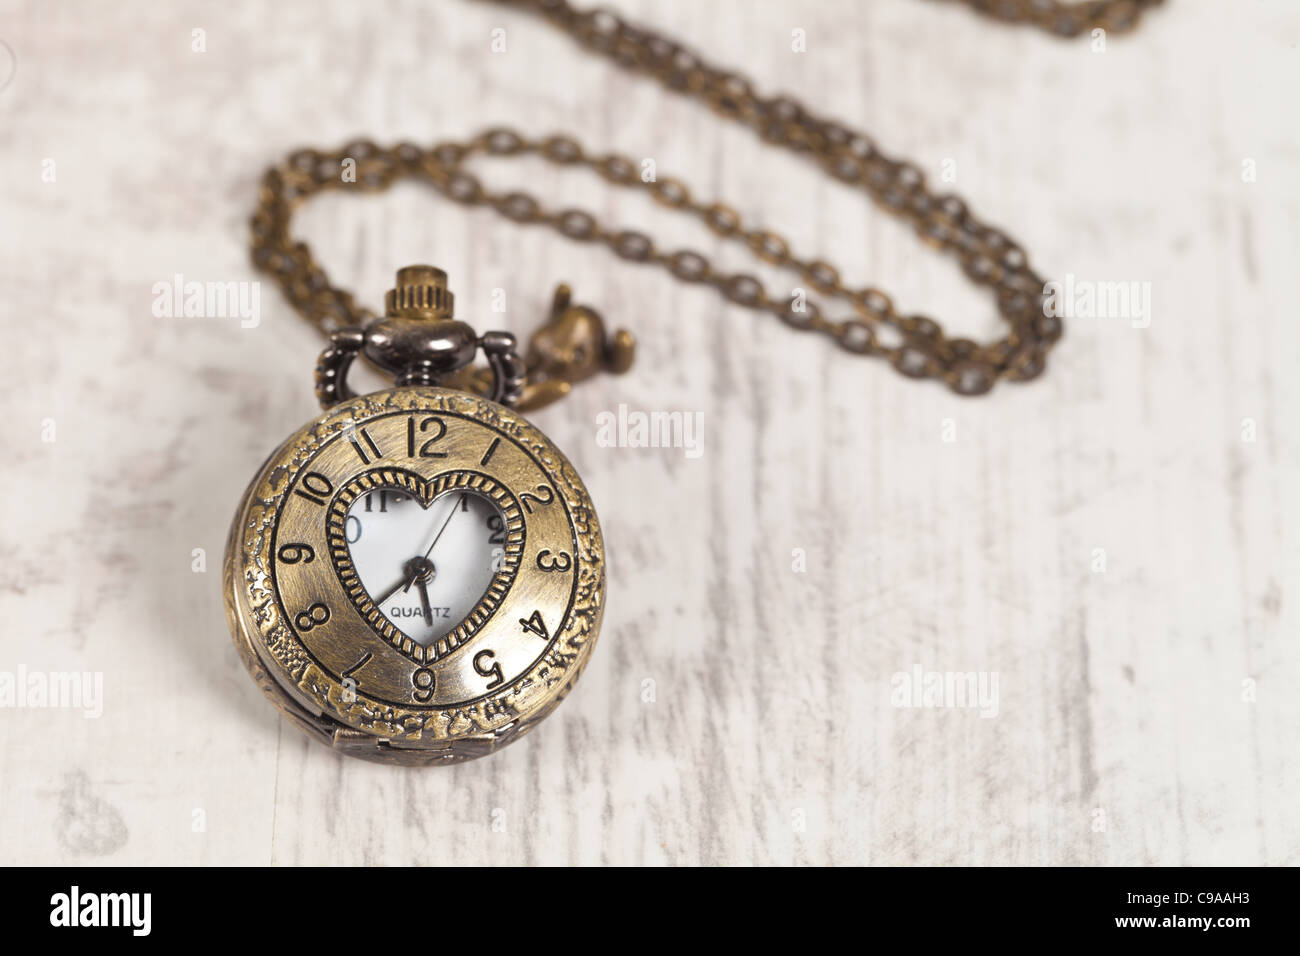 Nice vintage pocket watch on wooden background - Stock Image